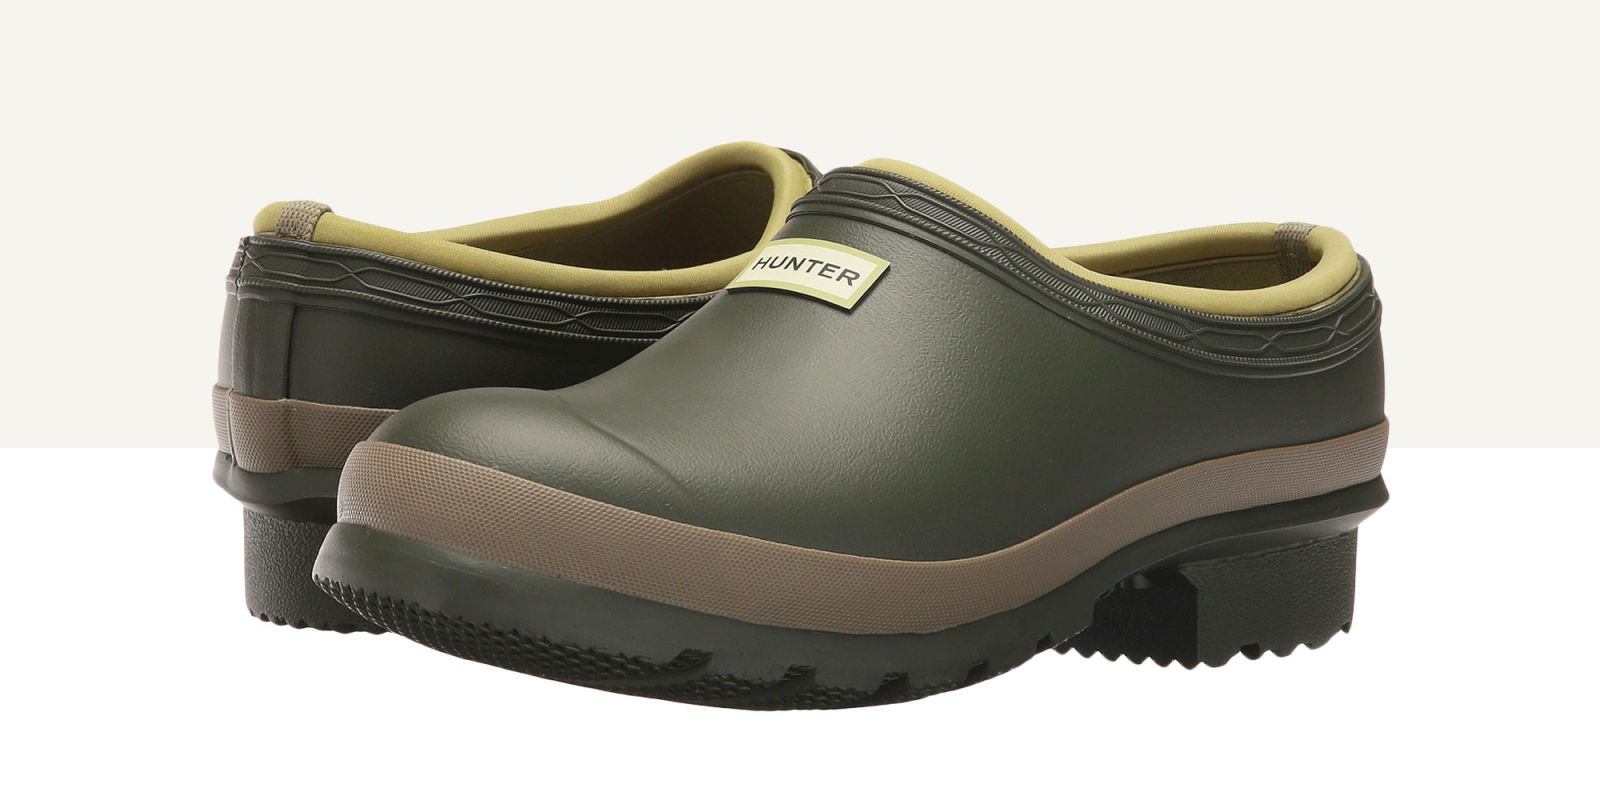 10 Best Garden Shoes and Clogs in 2017 Reviews of Waterproof